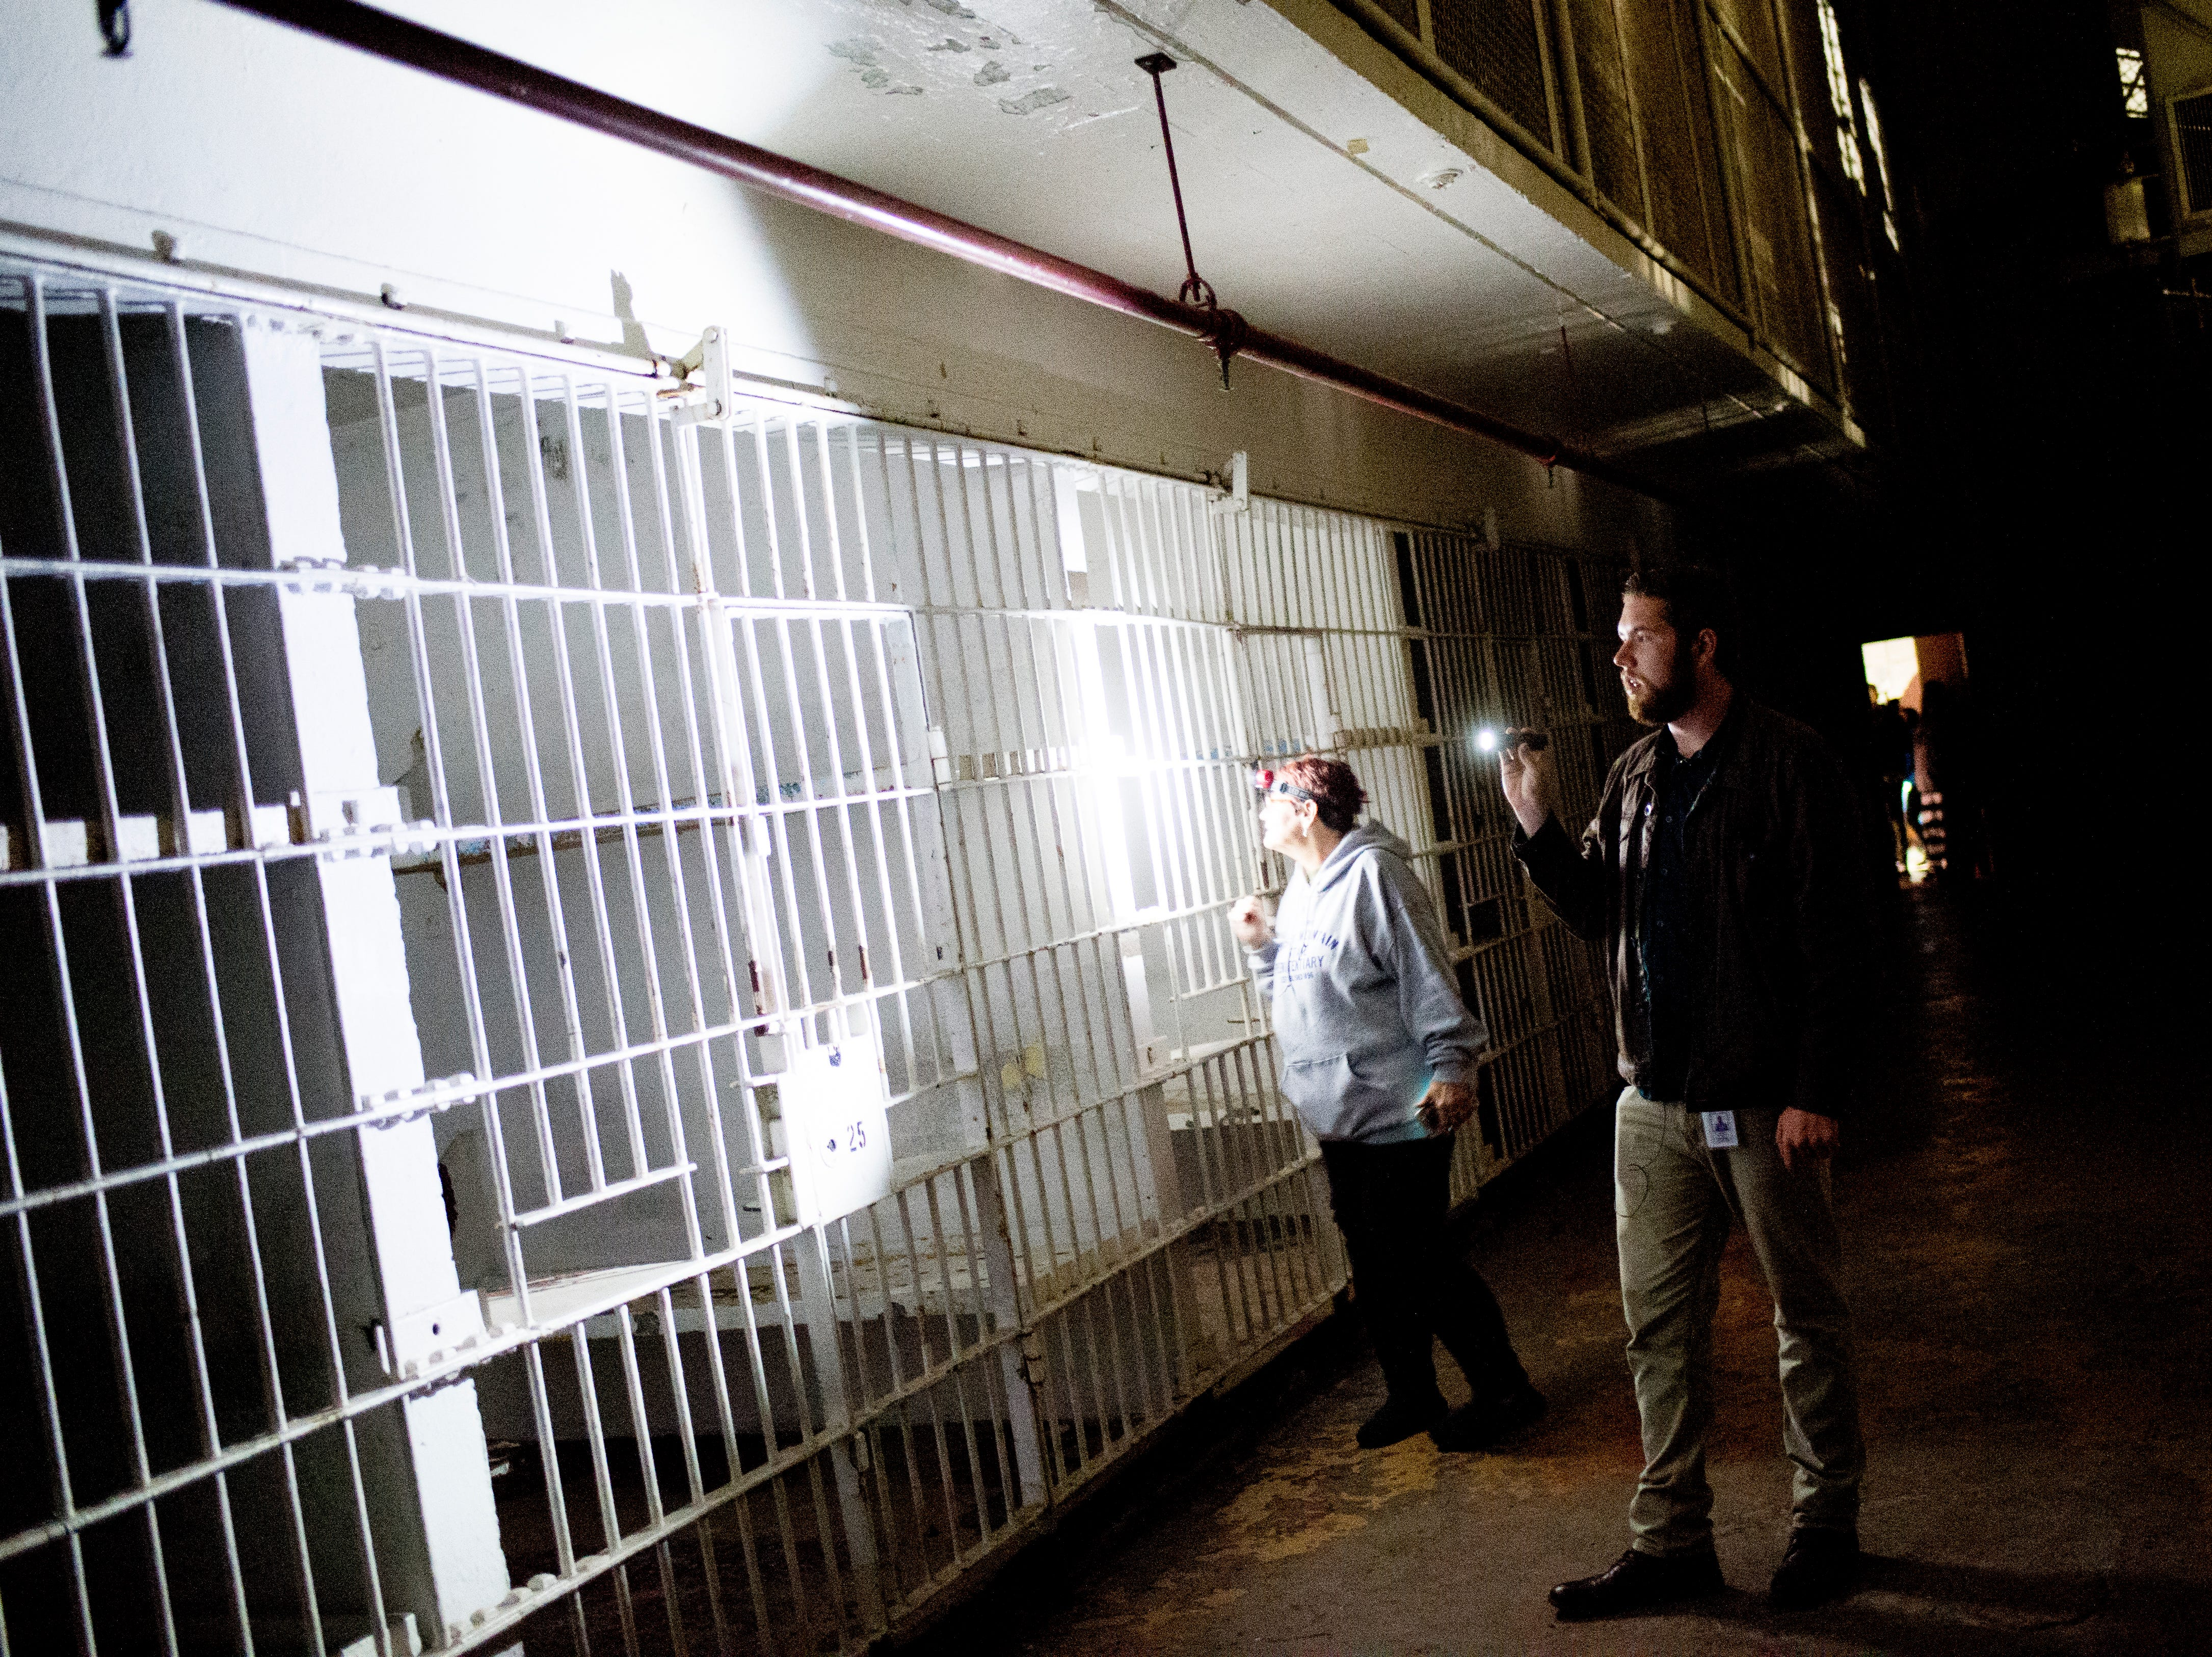 Ryan Wilusz and tour guide Debbie Williams, who worked at the prison for 28 years, look at jail cells during a paranormal flashlight tour of Brushy Mountain State Penitentiary in Petros, Tennessee on Tuesday, October 16, 2018.